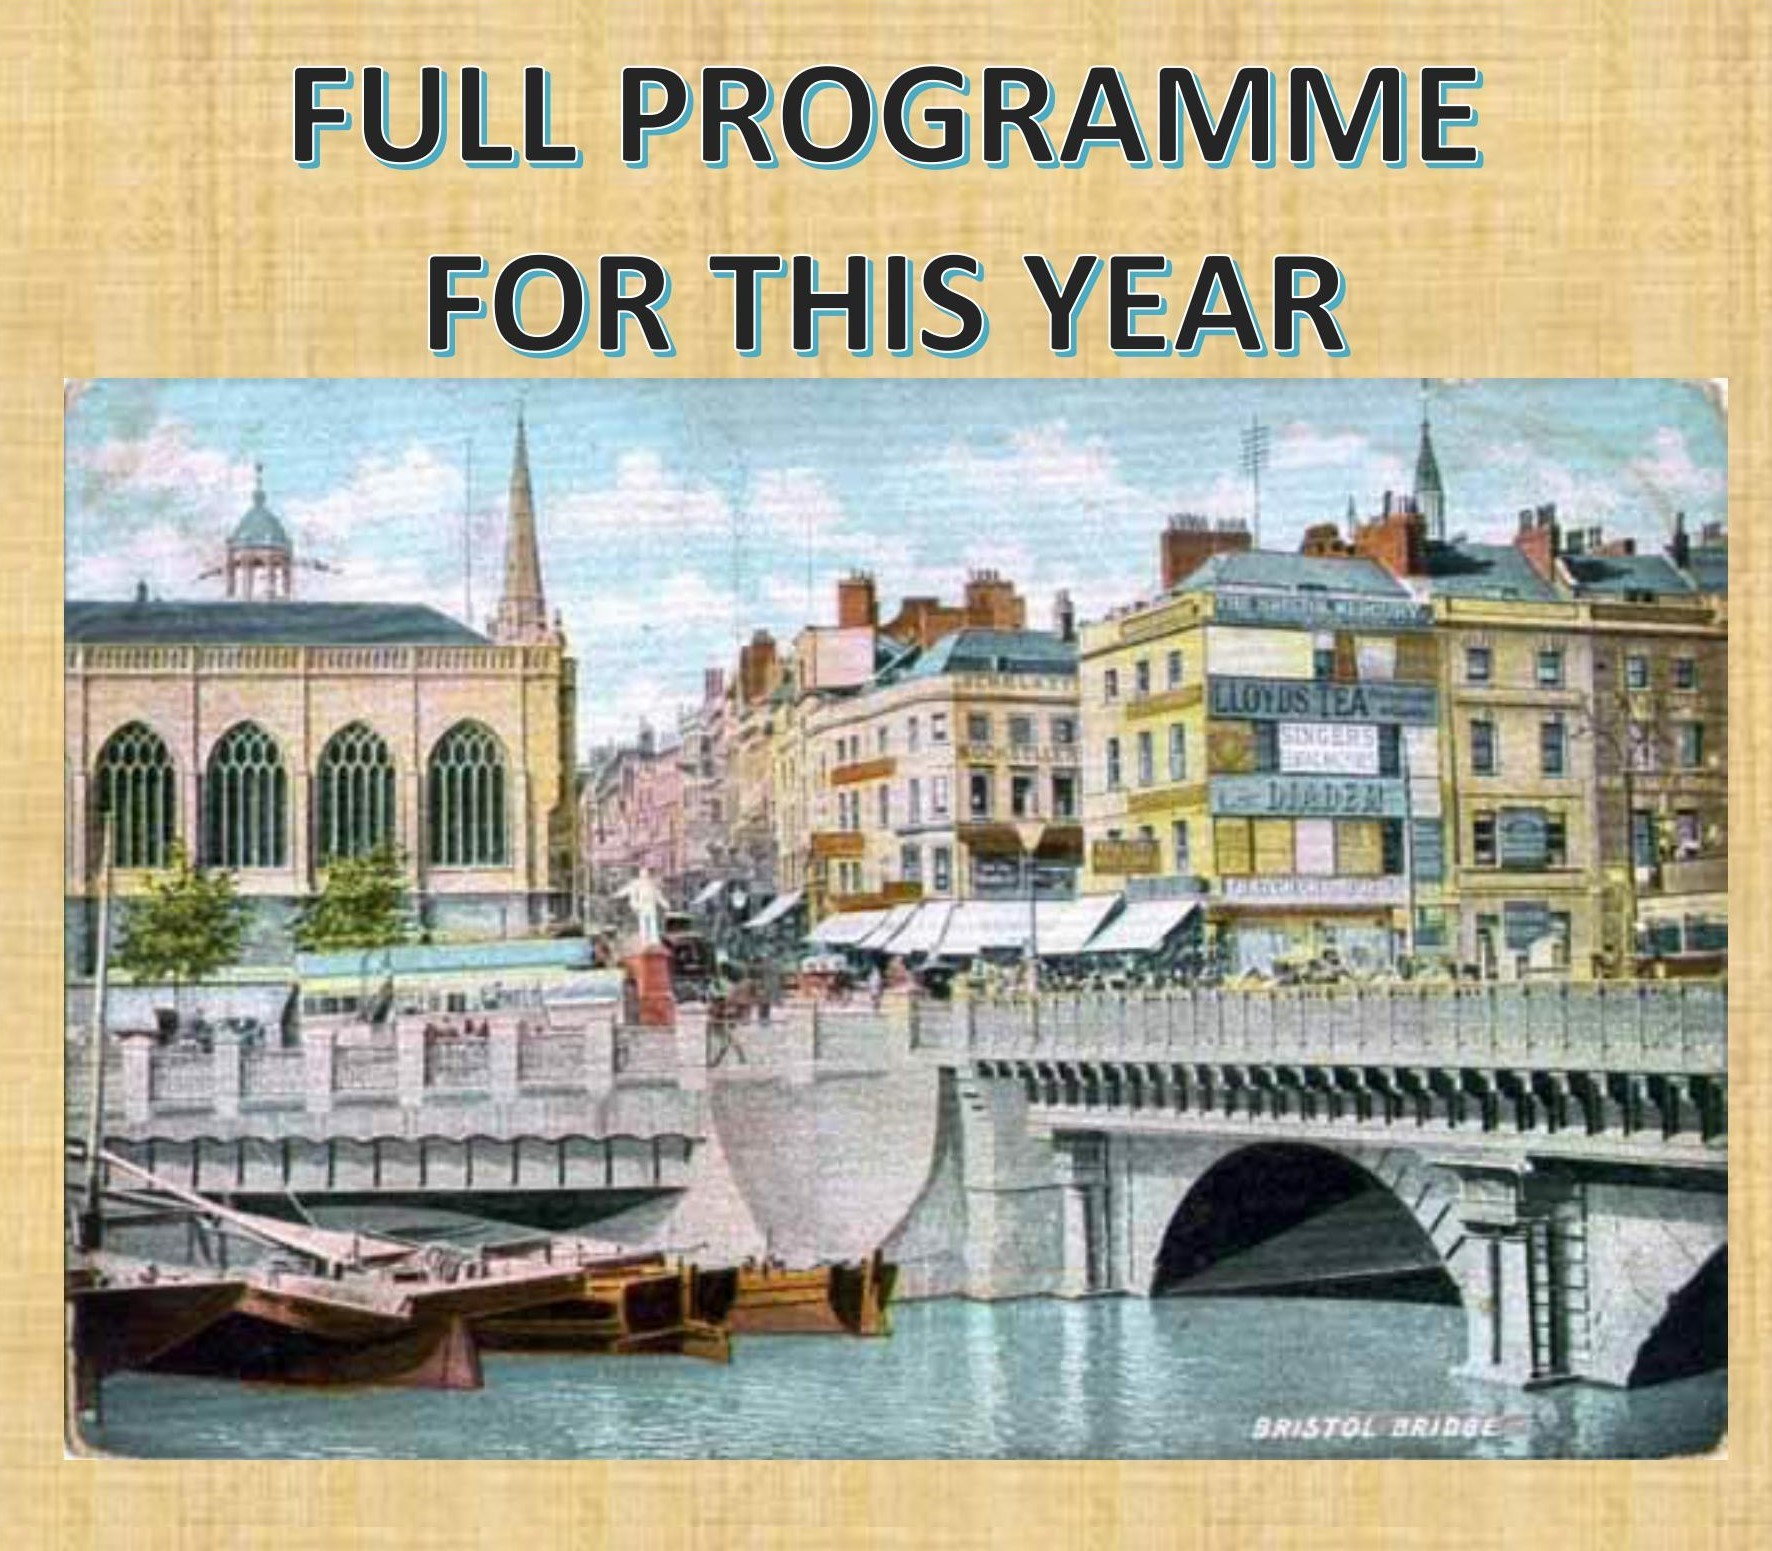 Website FULL PROGRAMME FOR THIS YEAR title